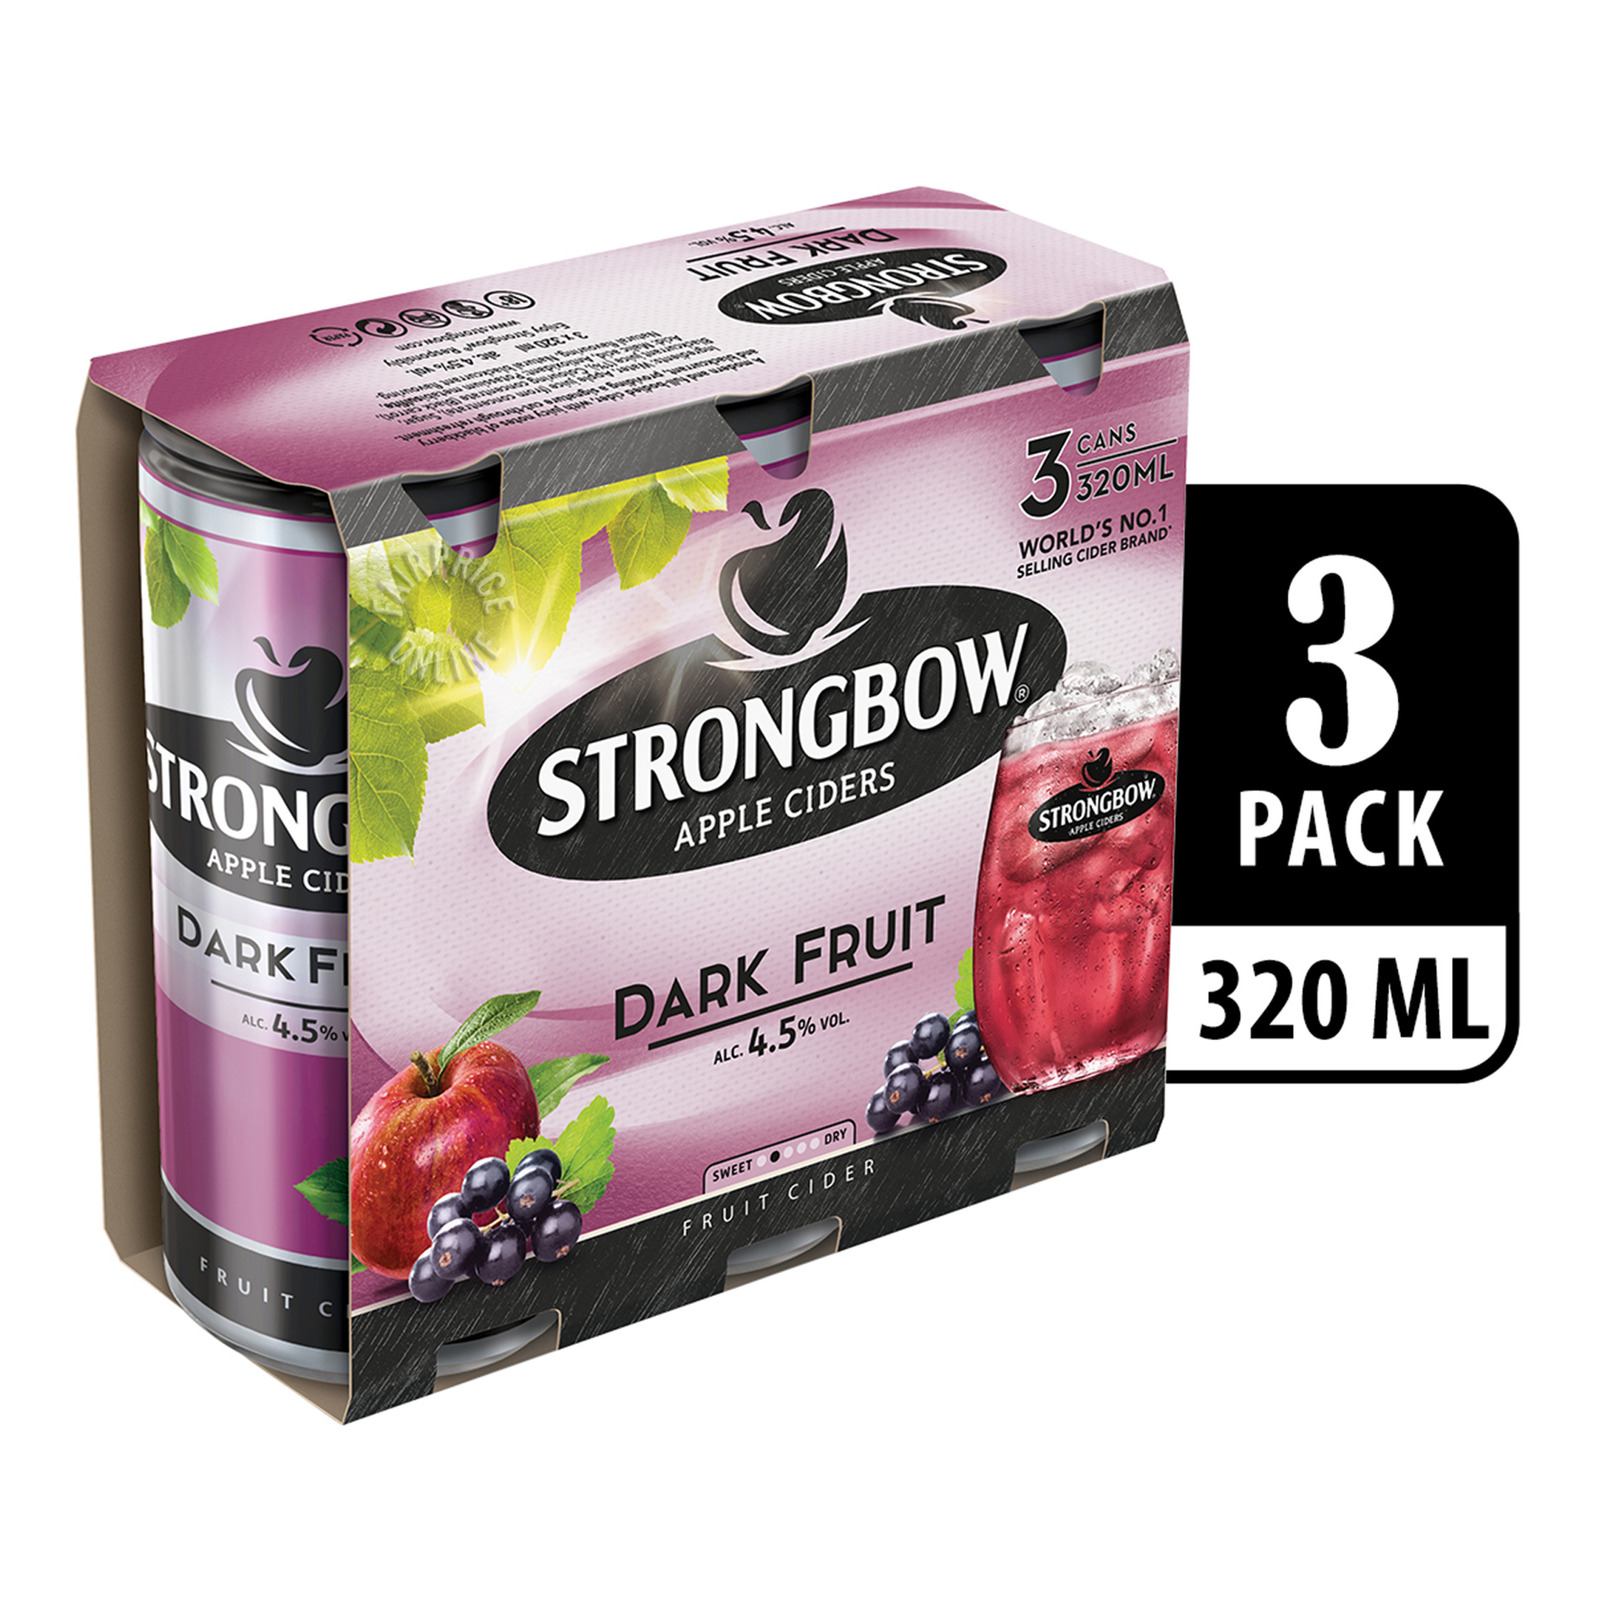 Strongbow Apple Can Cider - Dark Fruit